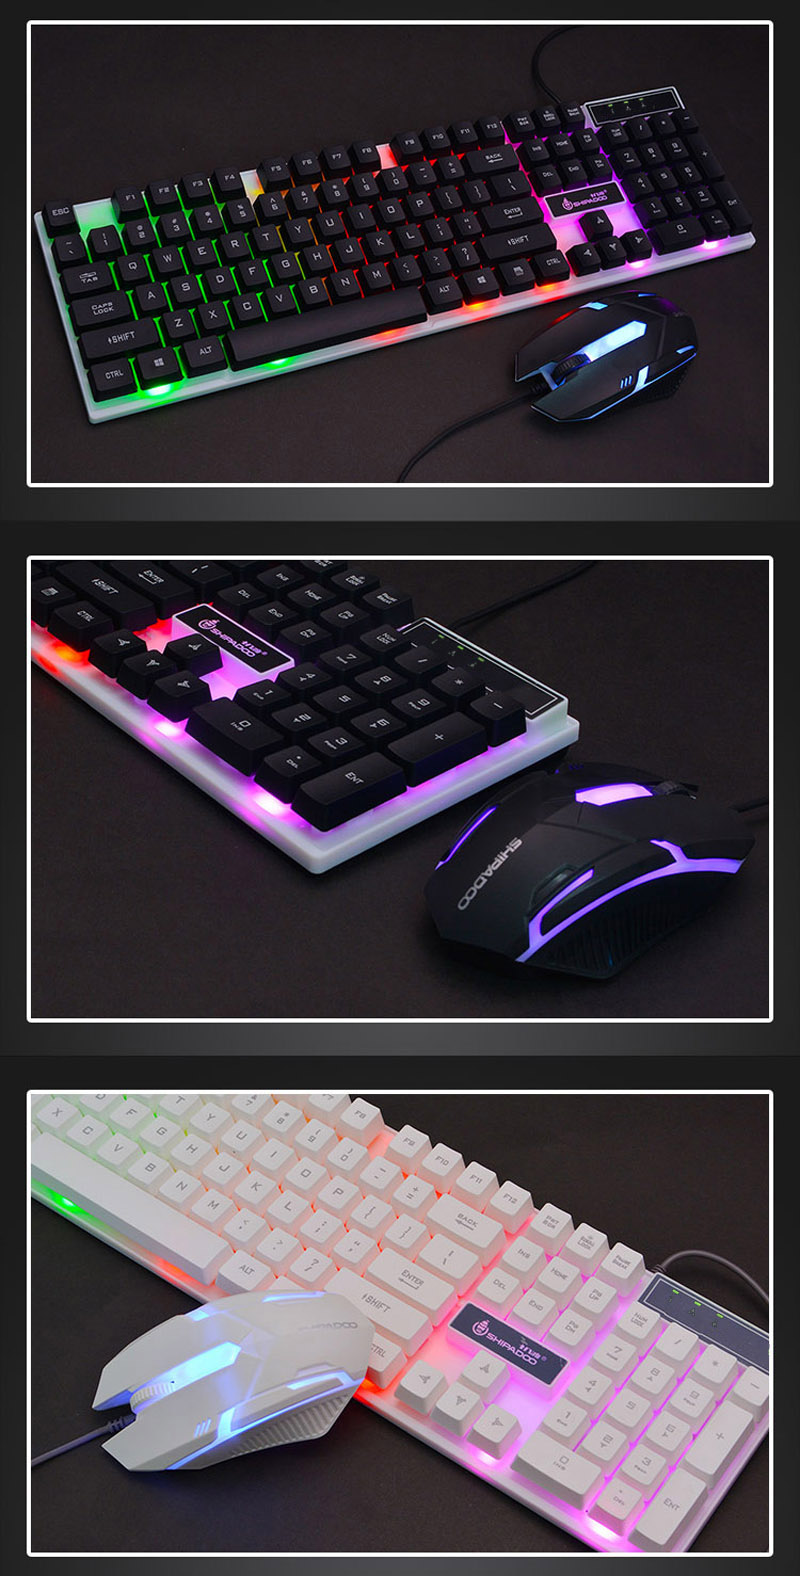 K280 USB Wired Computer Keyboard (9)